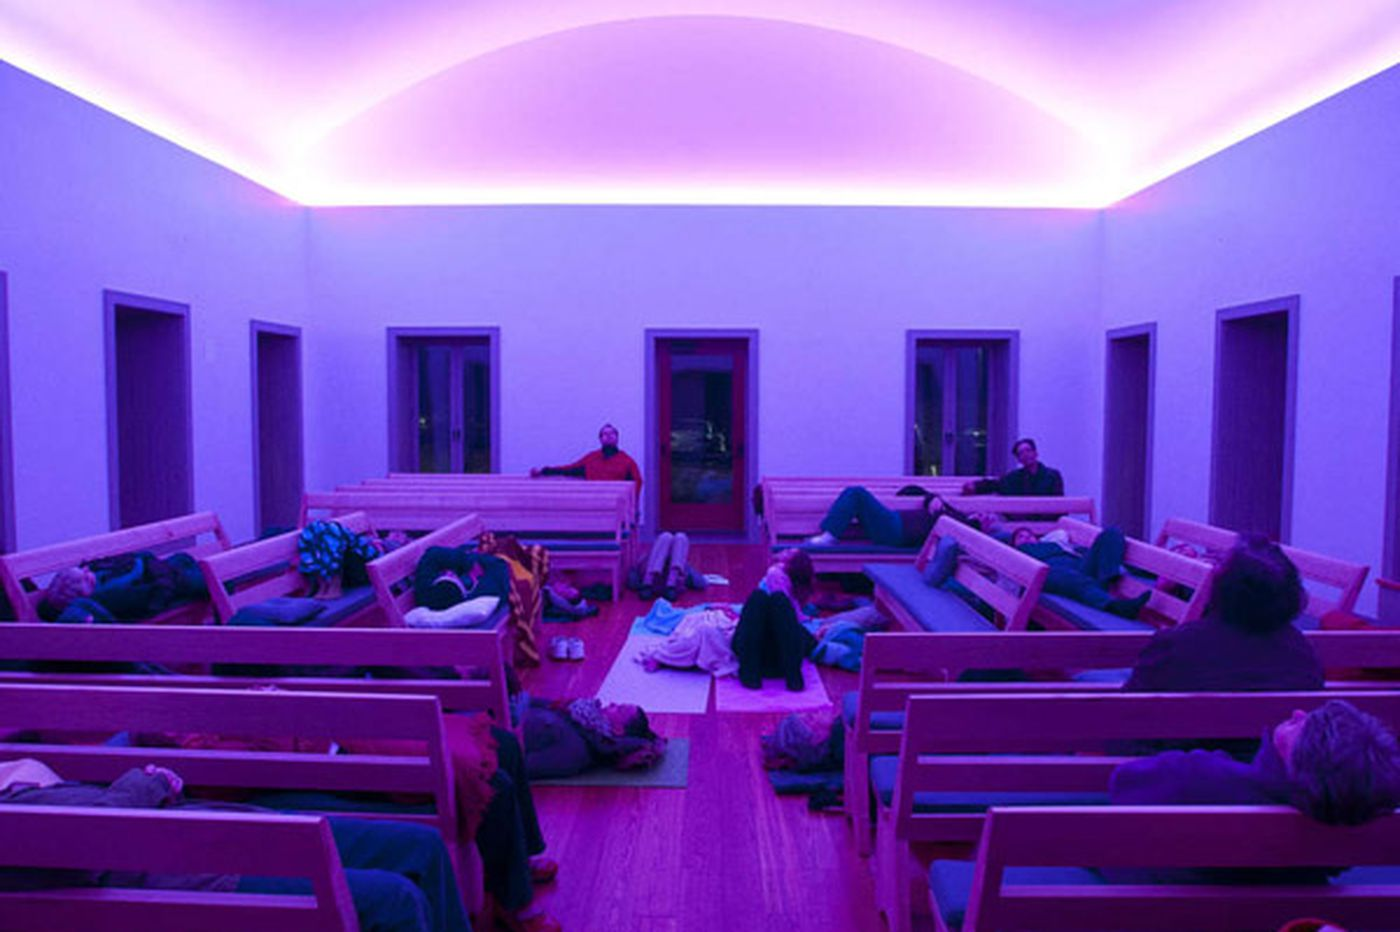 Changing Skyline: Art installation transforms Chestnut Hill meetinghouse